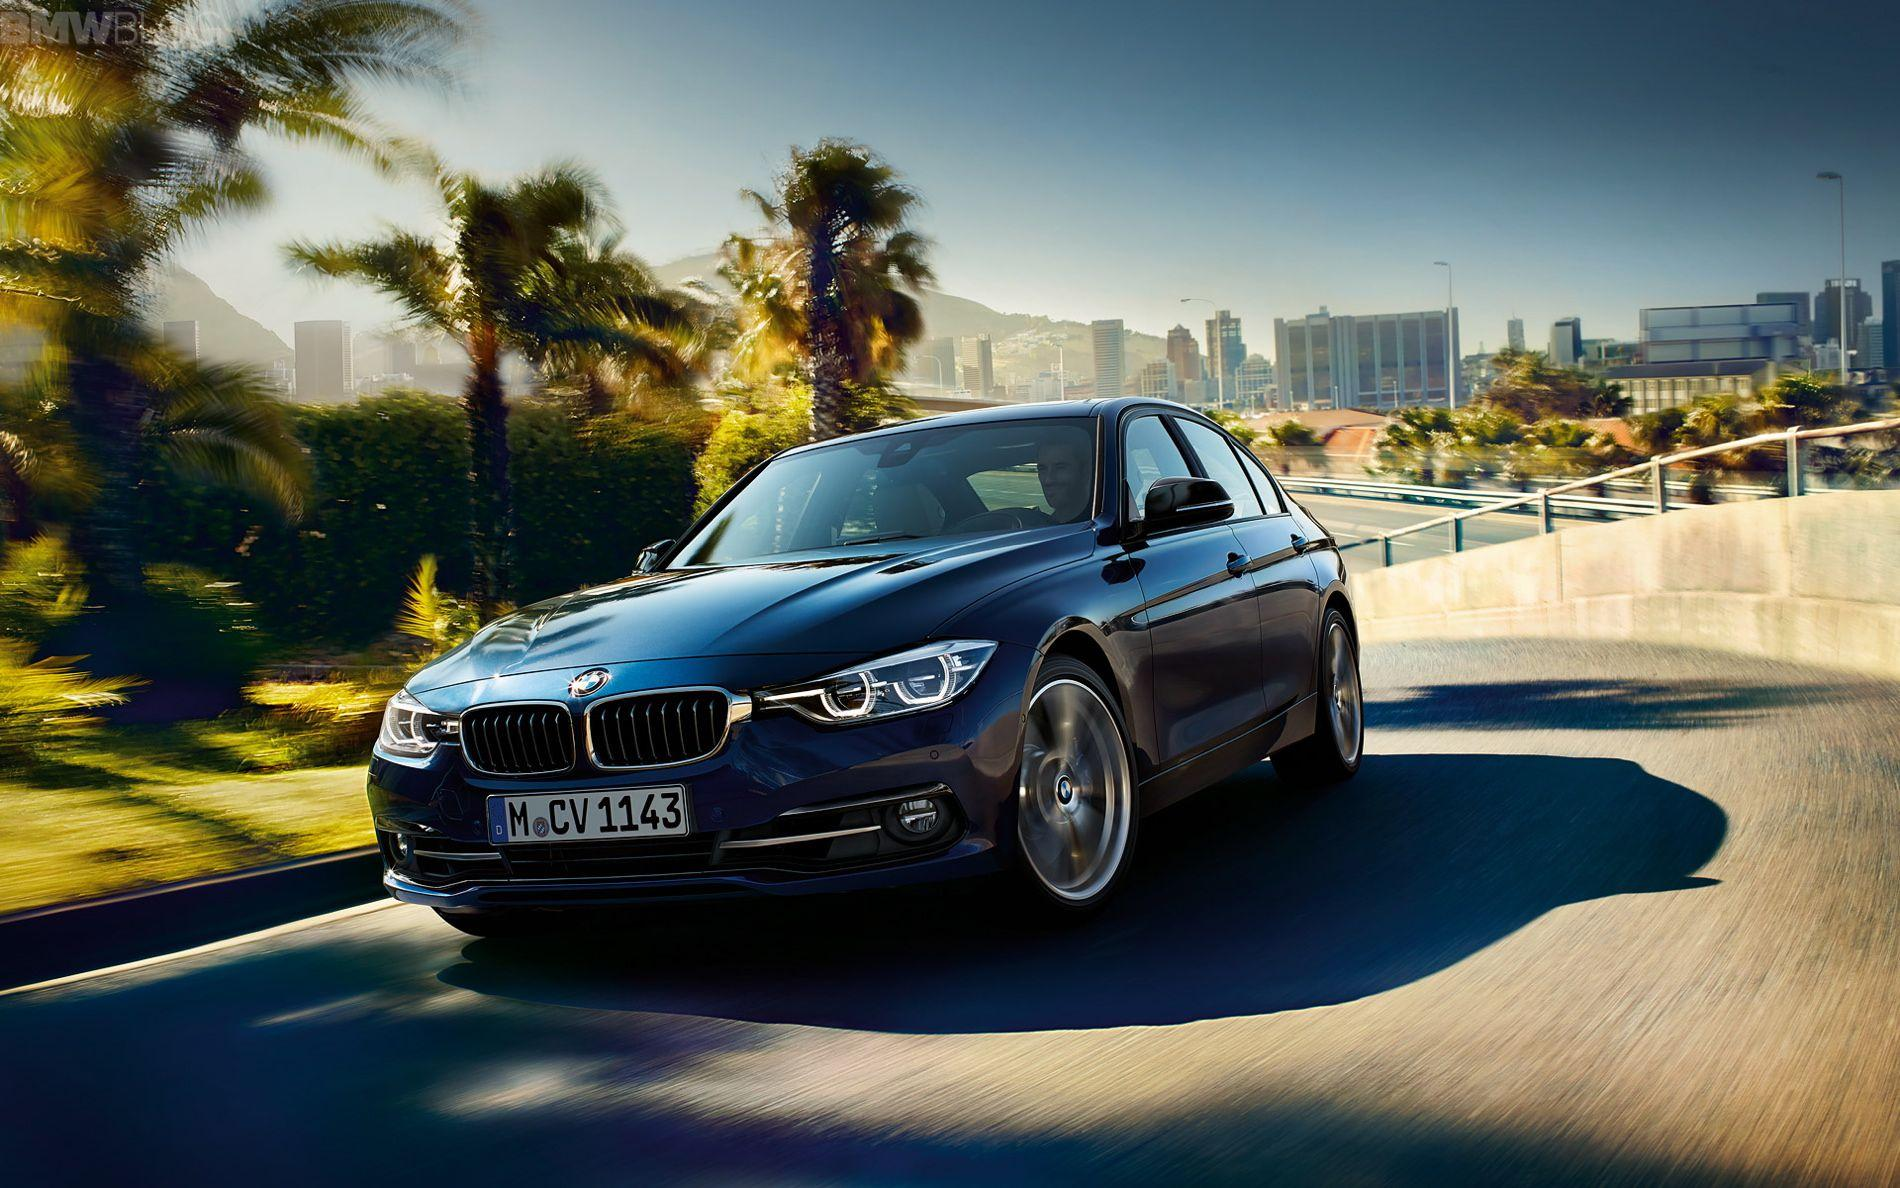 Bmw 320 Wallpapers Wallpaper Cave